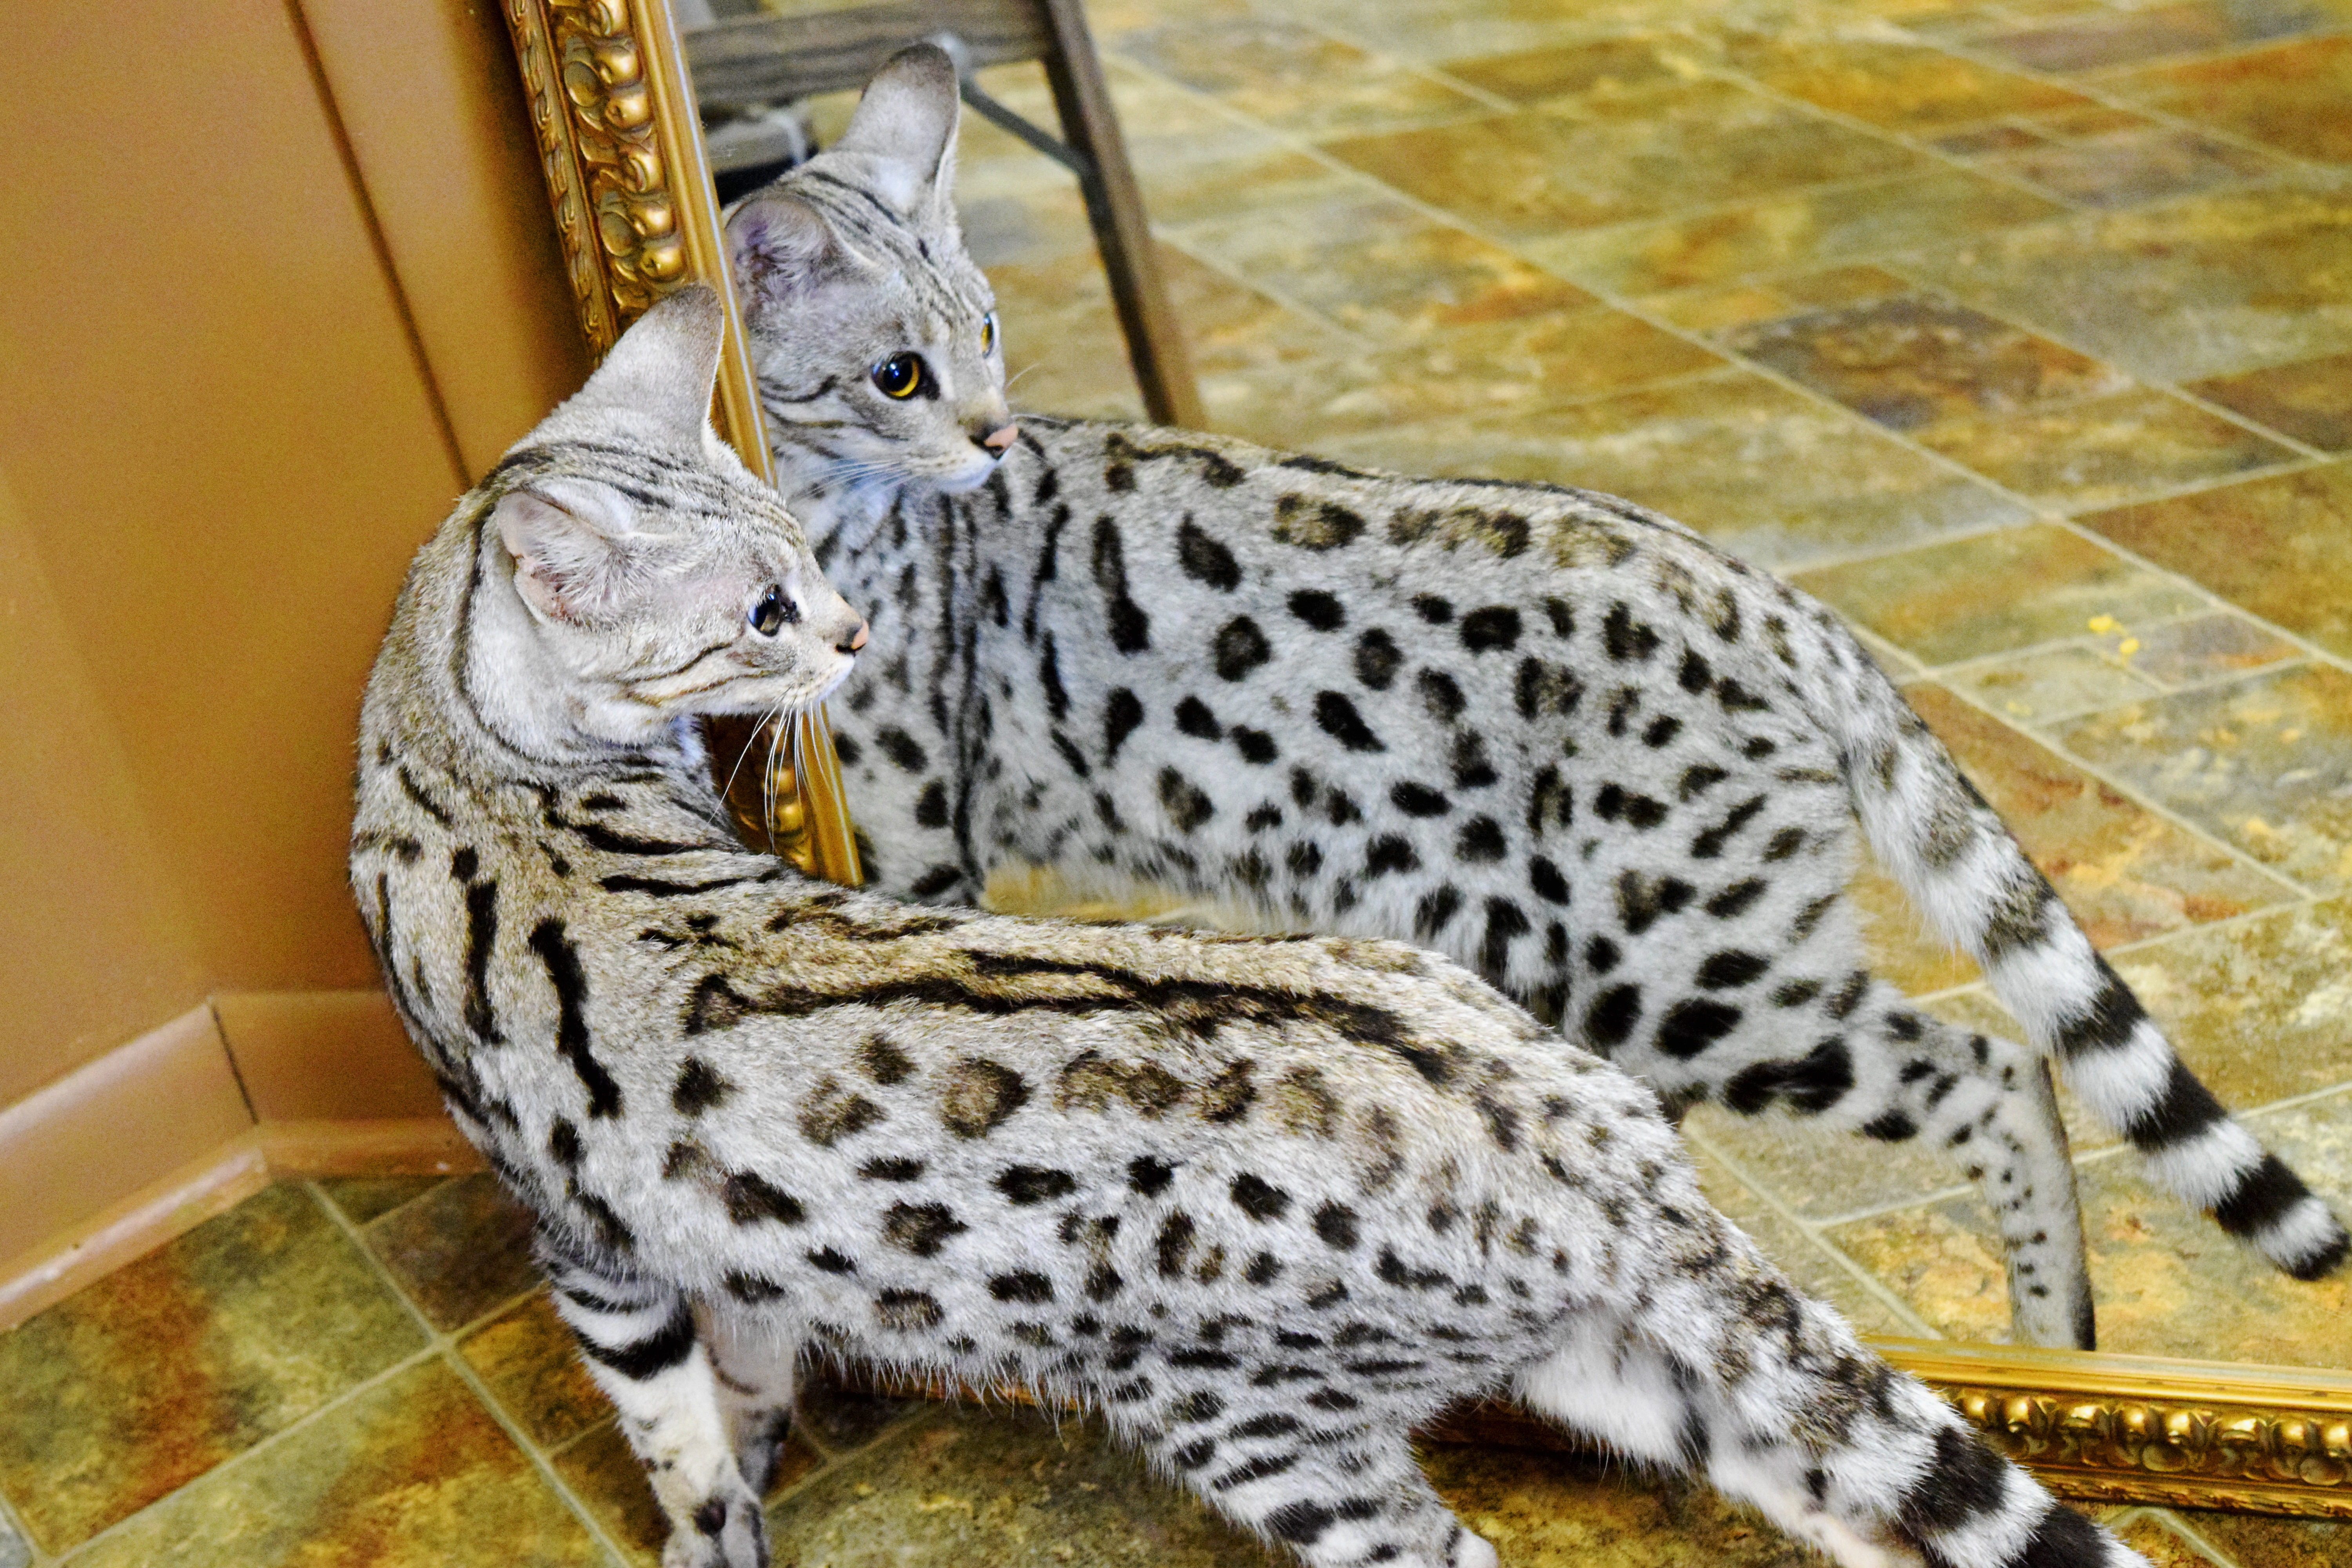 Savannah Cat Breeders - Savannah Cats, Bengal Cats For Sale